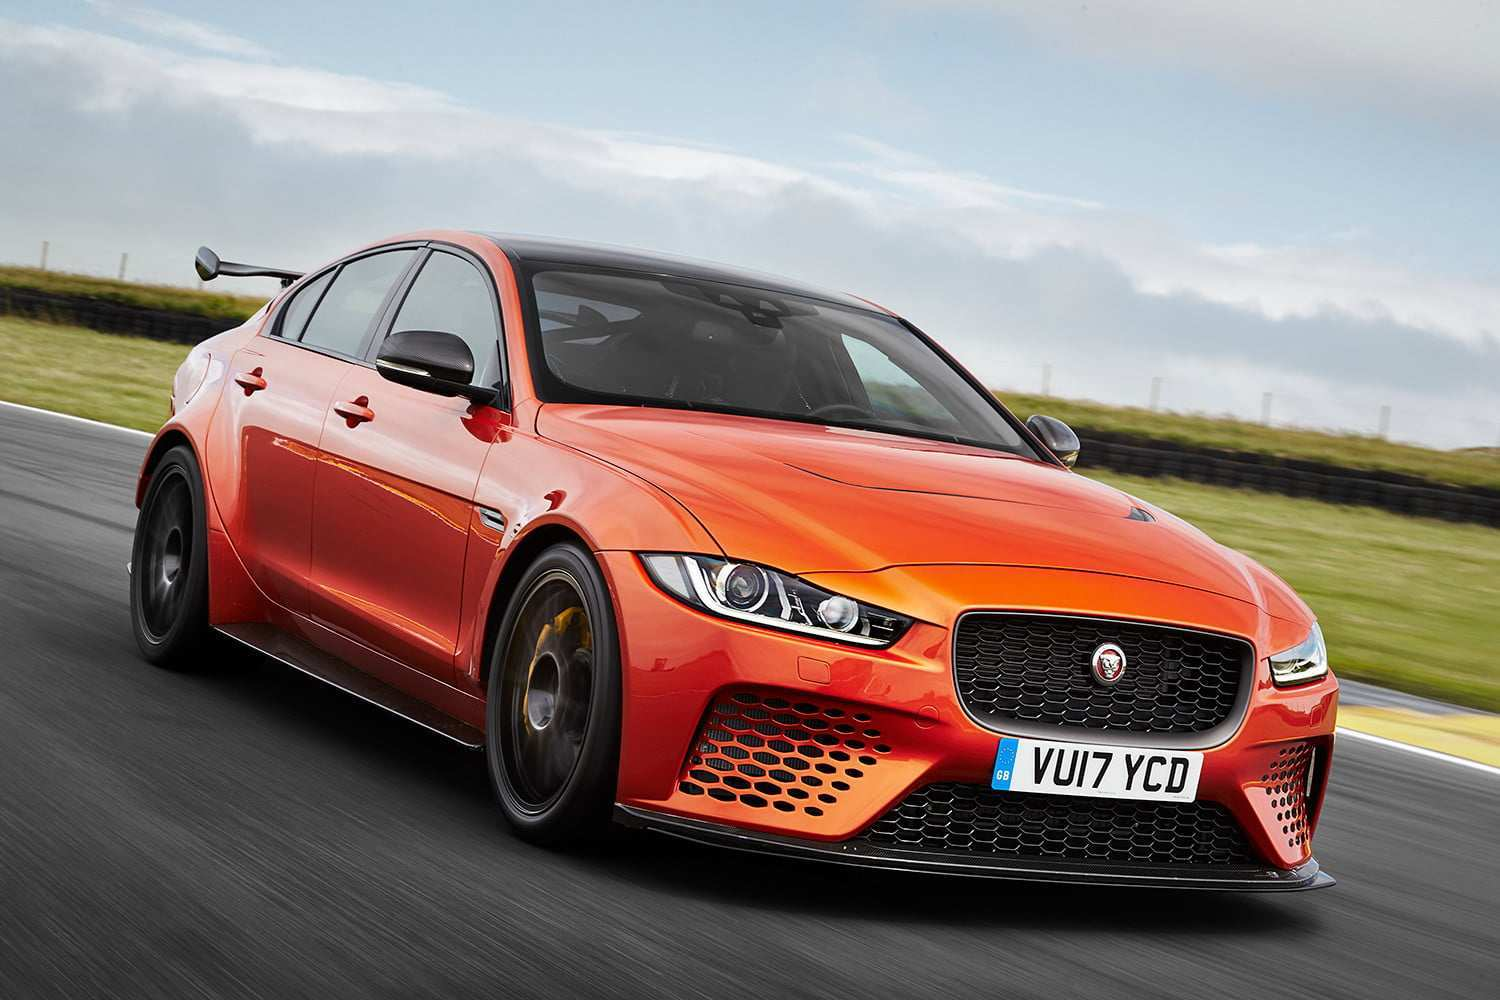 38 Great 2019 Jaguar Project 8 Overview for 2019 Jaguar Project 8